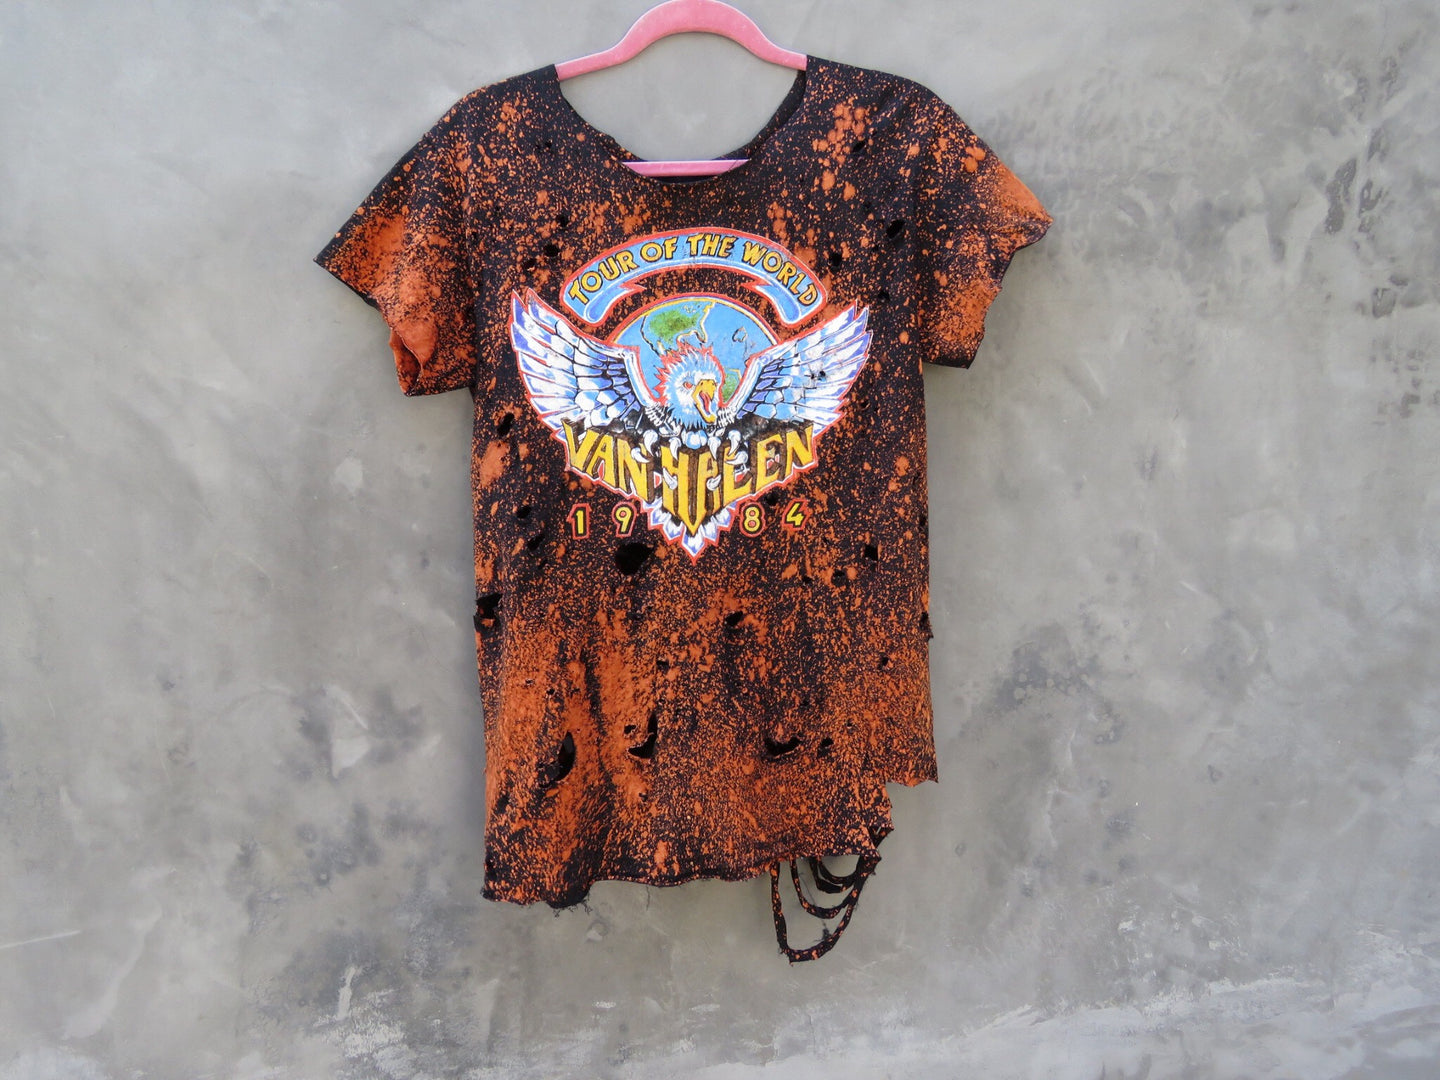 Van Halen Distressed Vintage T-Shirt